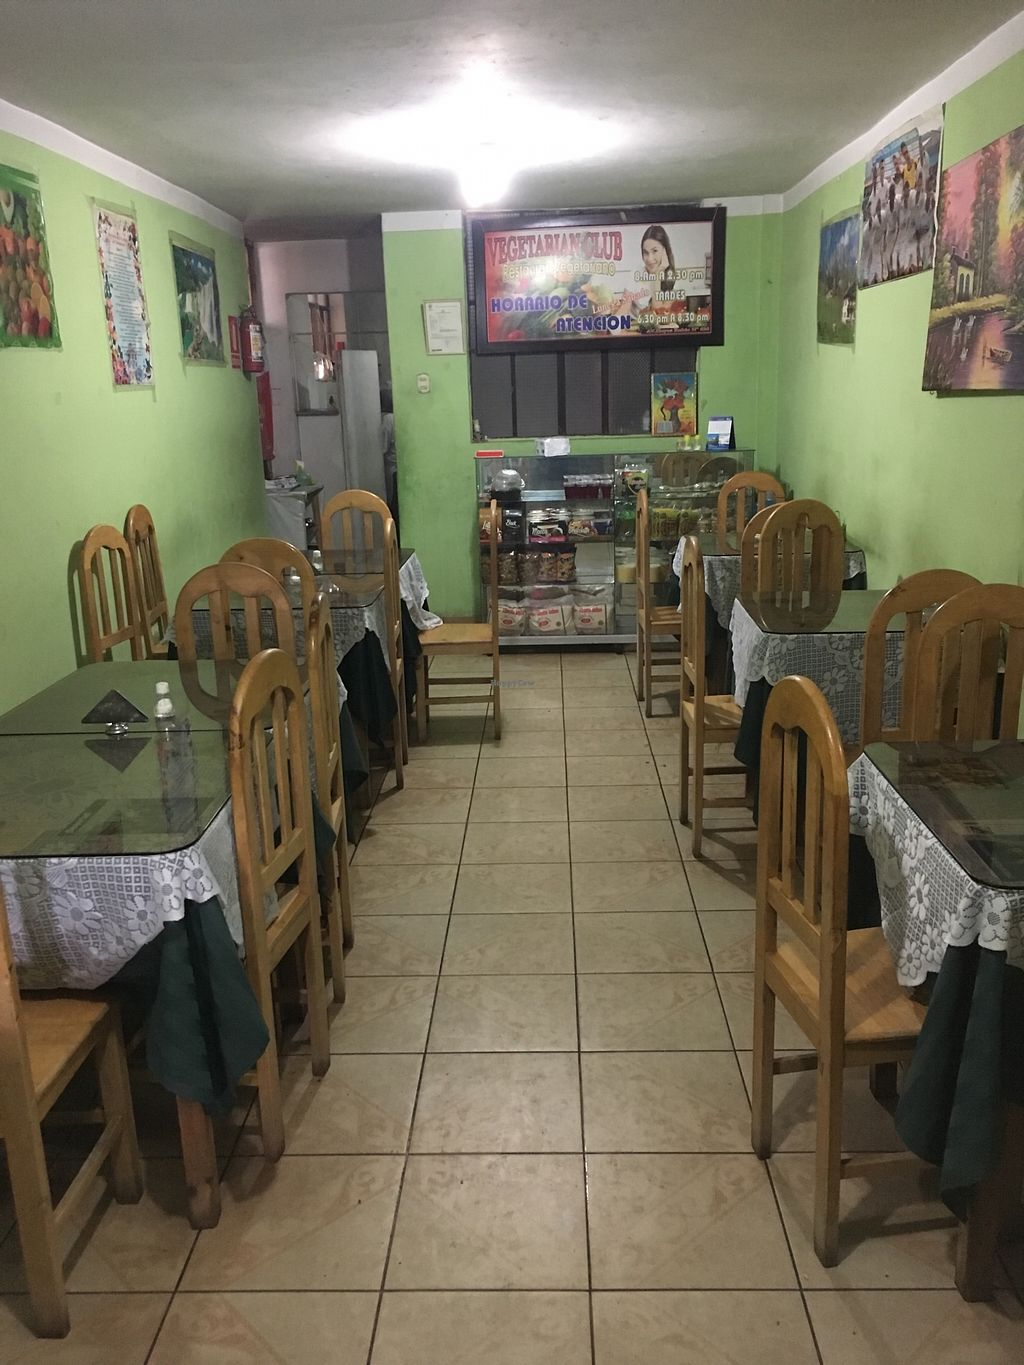 """Photo of Vegetarian Club  by <a href=""""/members/profile/peas-full"""">peas-full</a> <br/>inside <br/> October 23, 2017  - <a href='/contact/abuse/image/102045/318156'>Report</a>"""